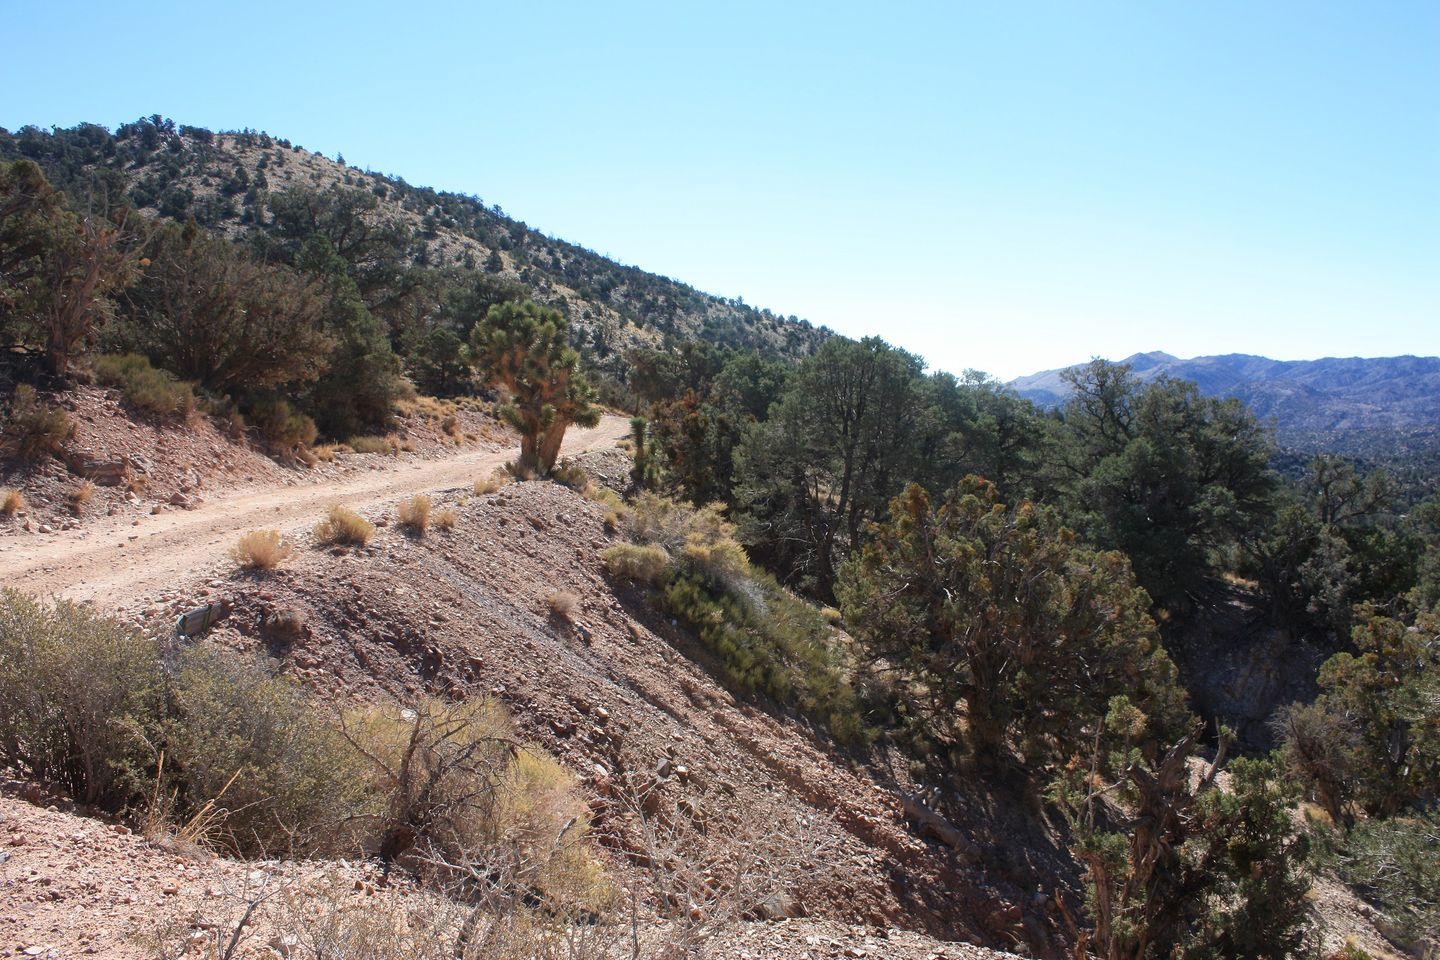 2N02 - Burns Canyon - Waypoint 4: Mine With A View